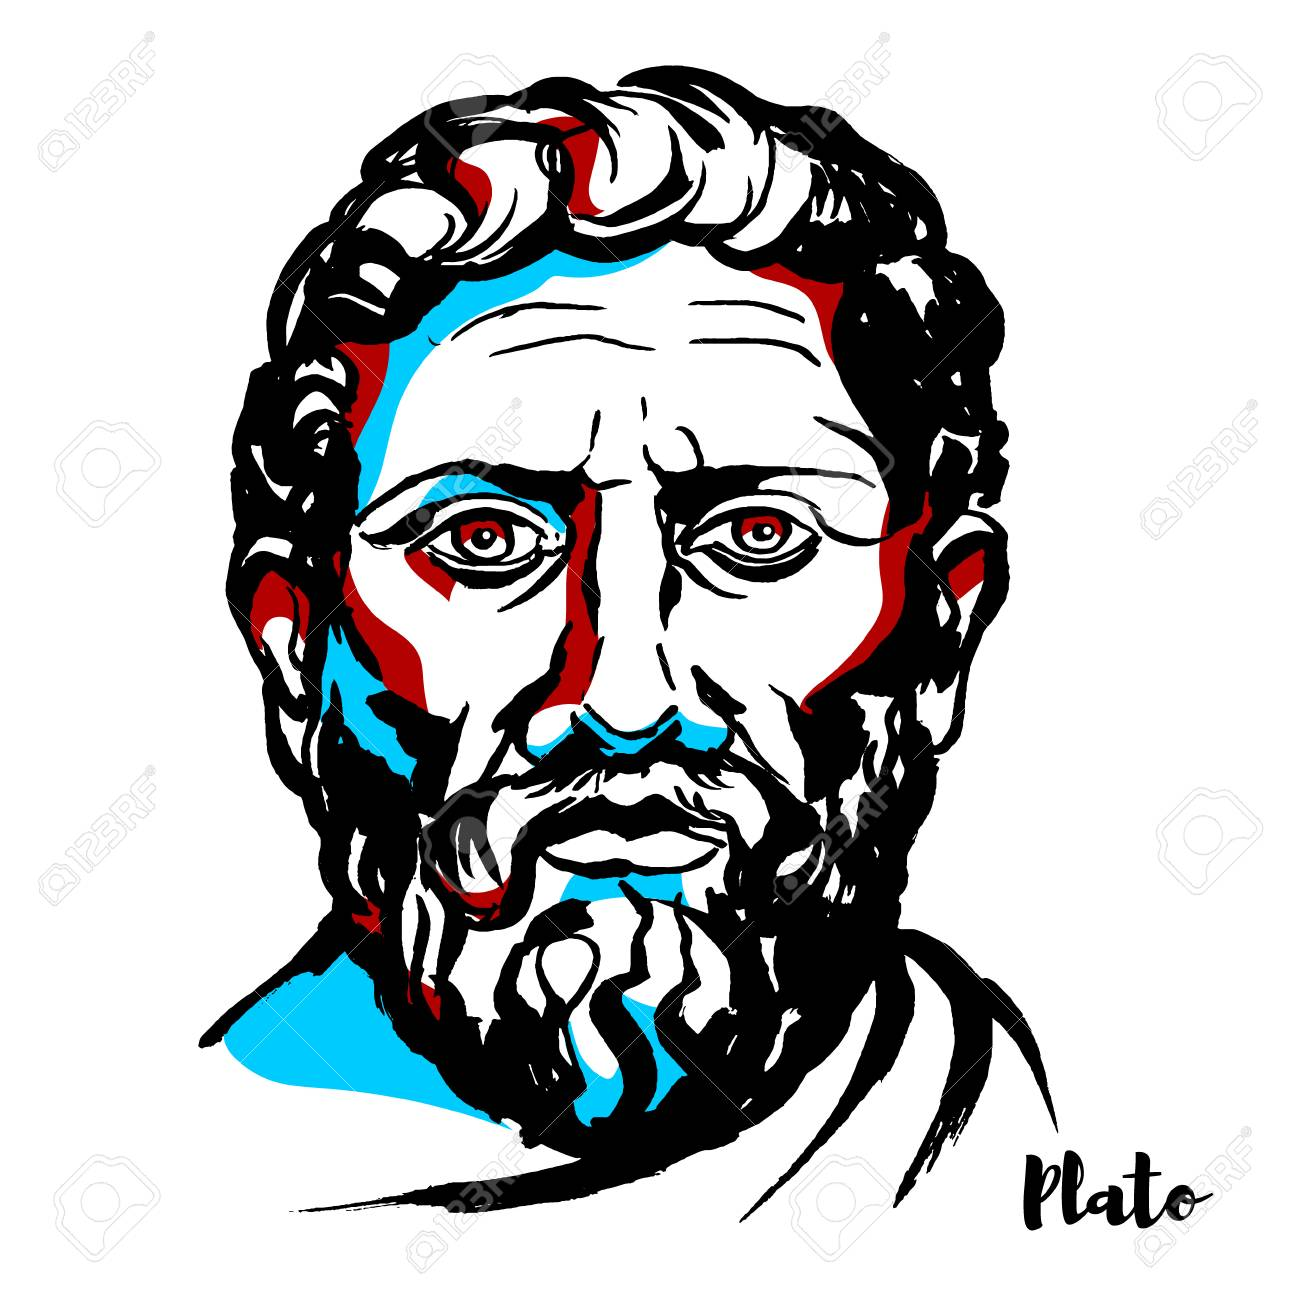 Plato engraved vector portrait with ink contours. Philosopher in Classical Greece and the founder of the Academy in Athens, the first institution of higher learning in the Western world. - 110296552